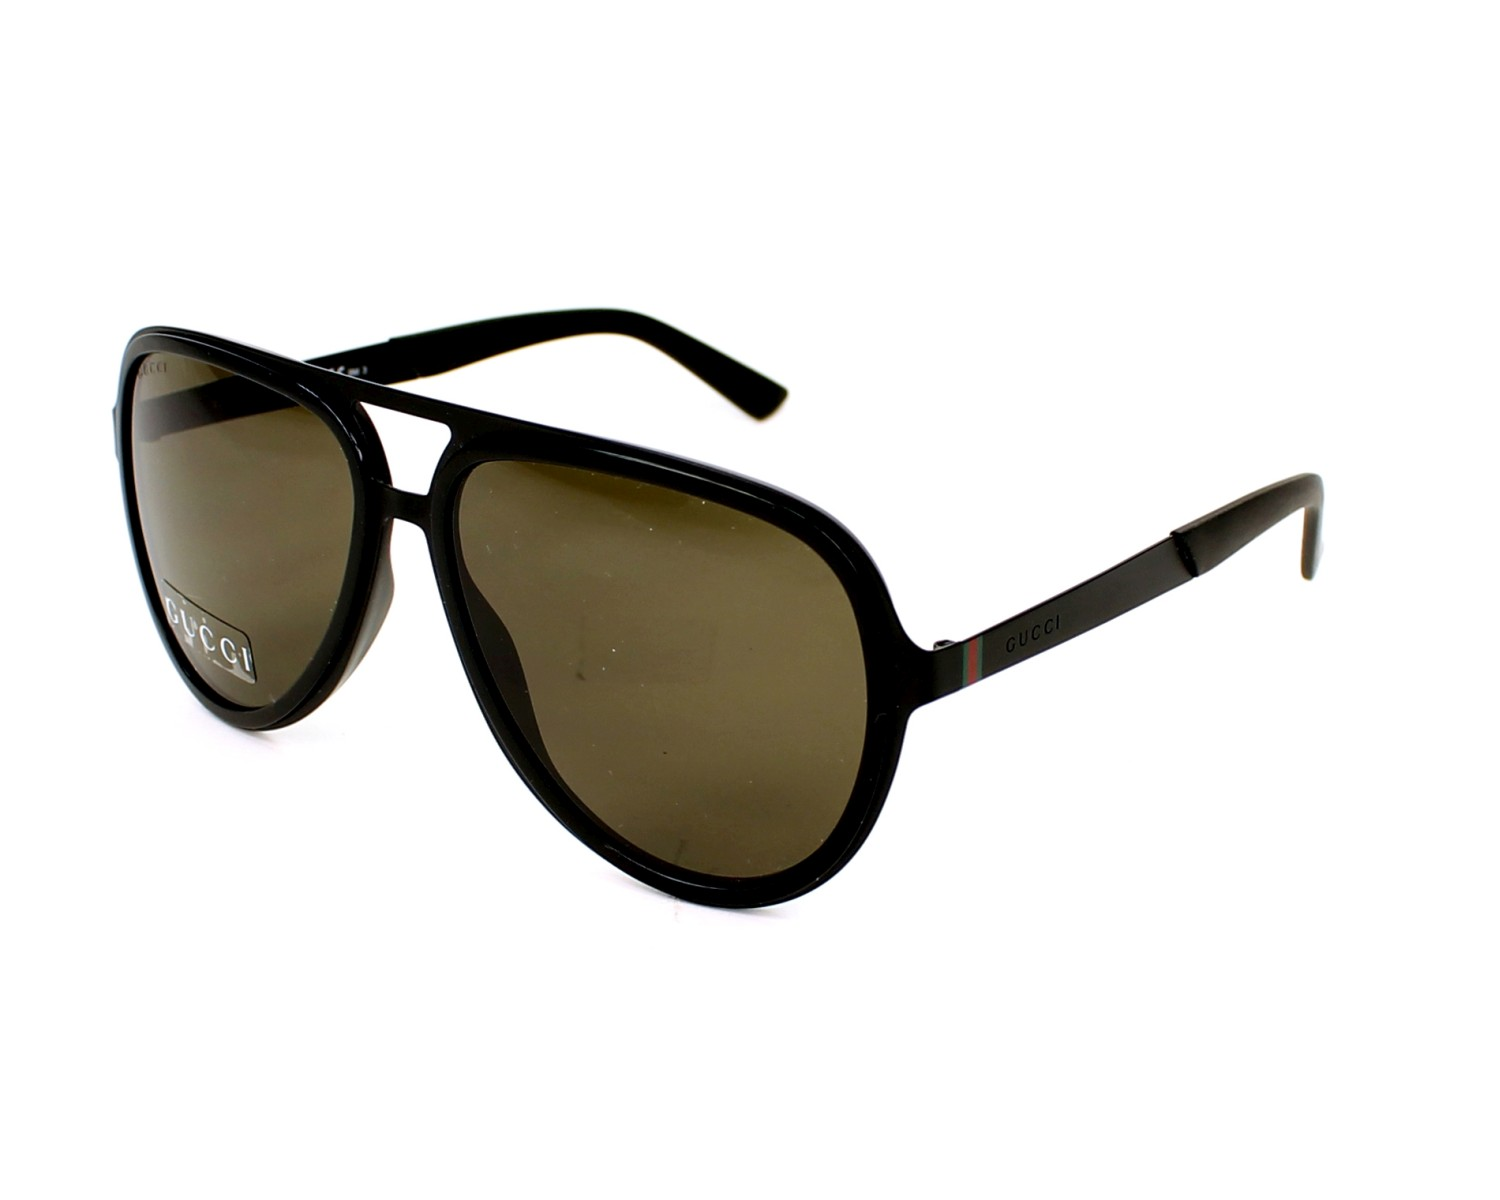 thumbnail Sunglasses Gucci GG-2274-S 003/EJ - Black profile view